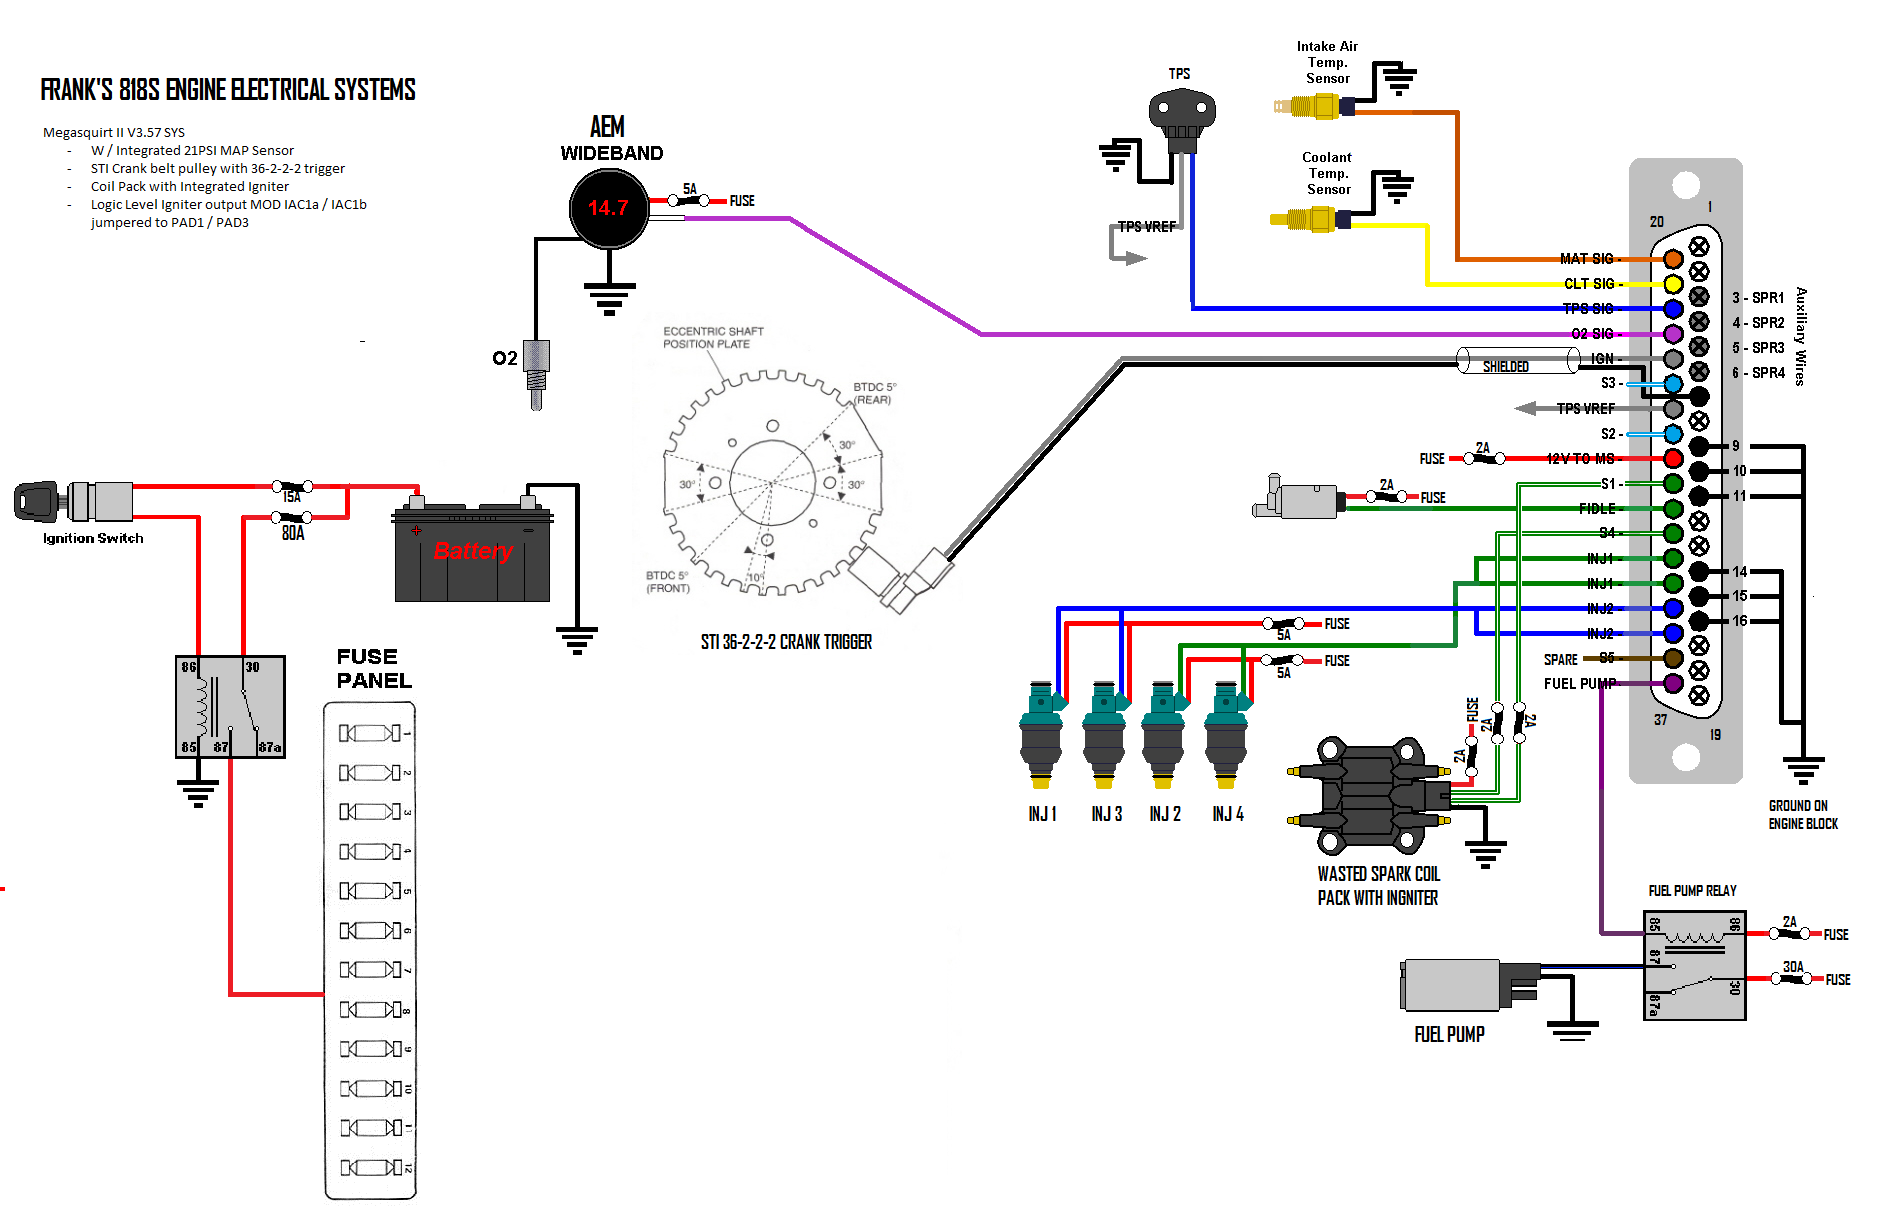 Nc29 Wiring Diagram : Captivating microsquirt wiring diagram images best image